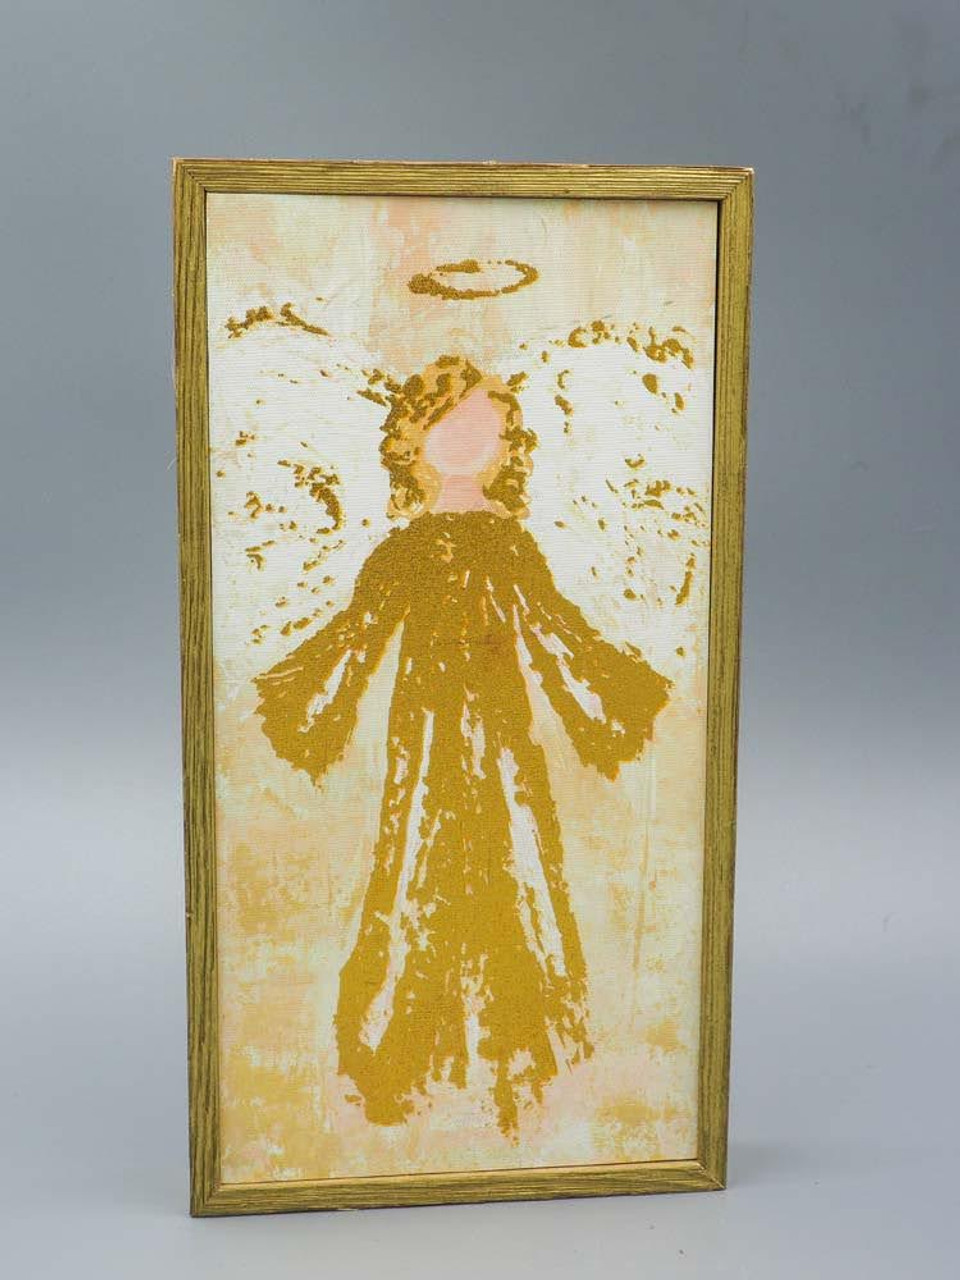 Glory Angel Gold Embellished Mini Framed Canvas